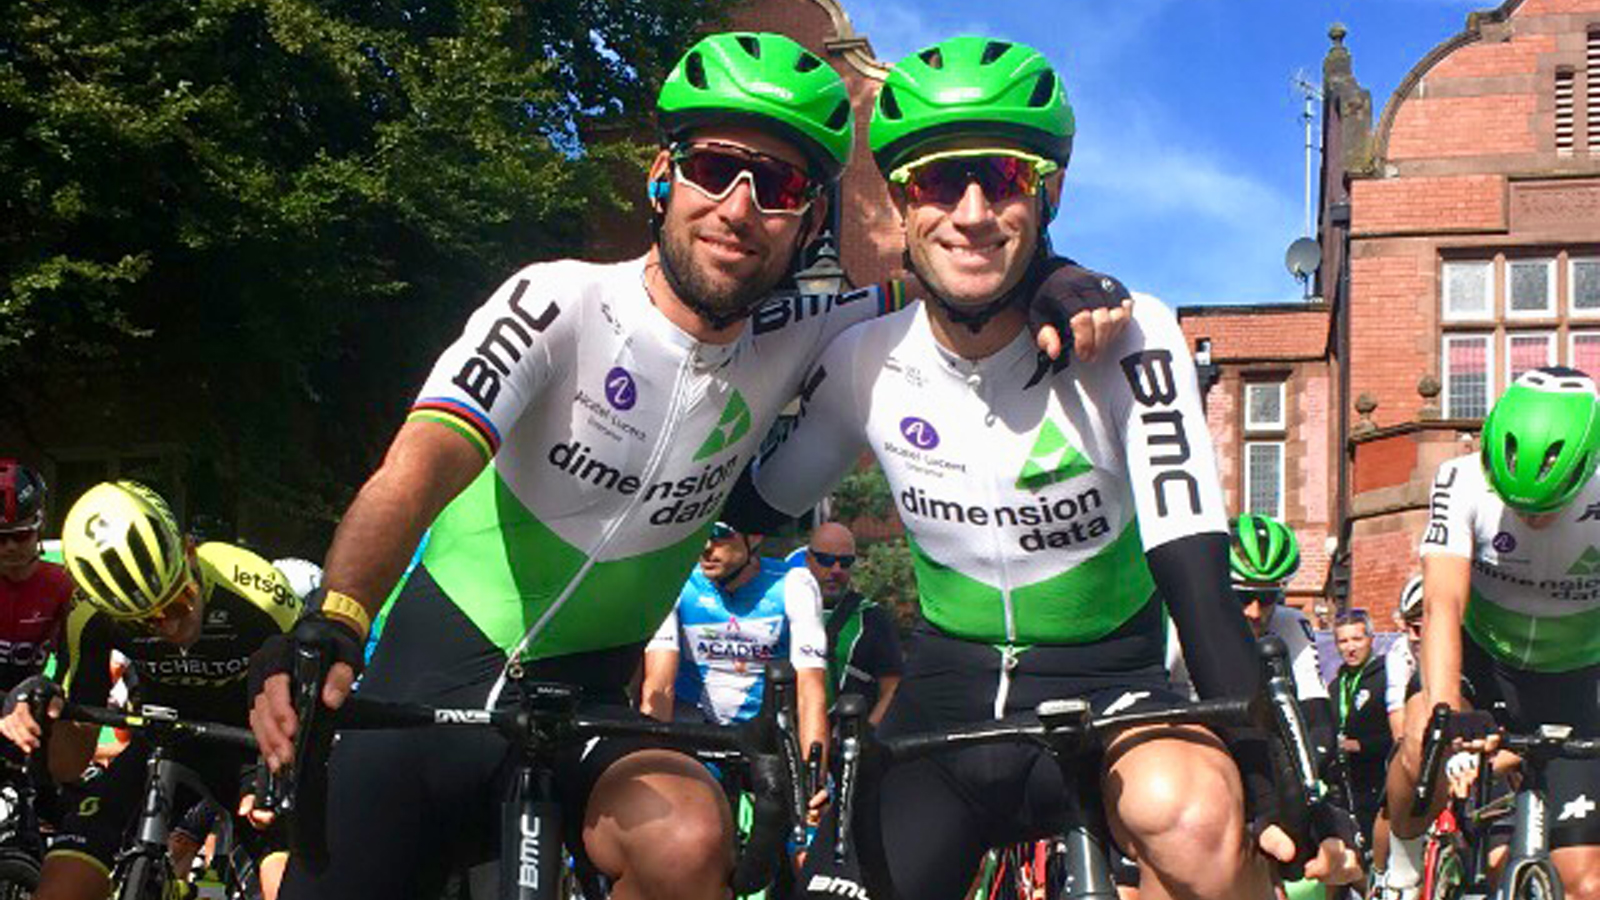 Mark Renshaw ends illustrious cycling career at the OVO Energy Tour of Britain - OVO Energy Tour of Britain